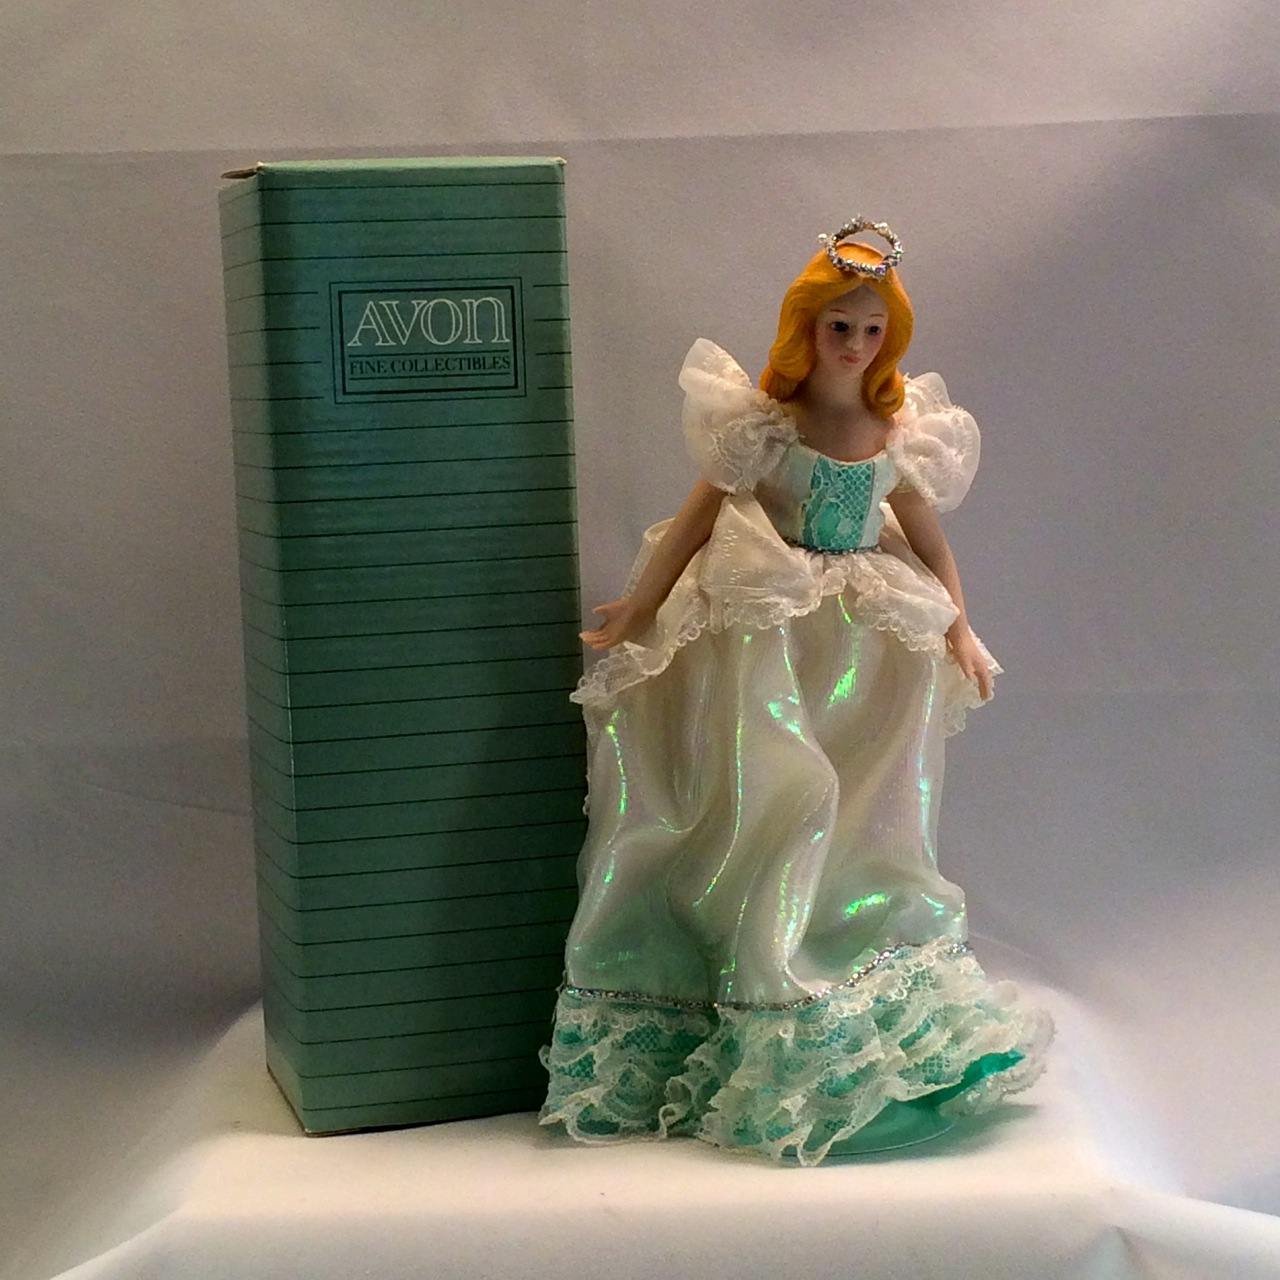 1989 Avon Fairy Princess Doll